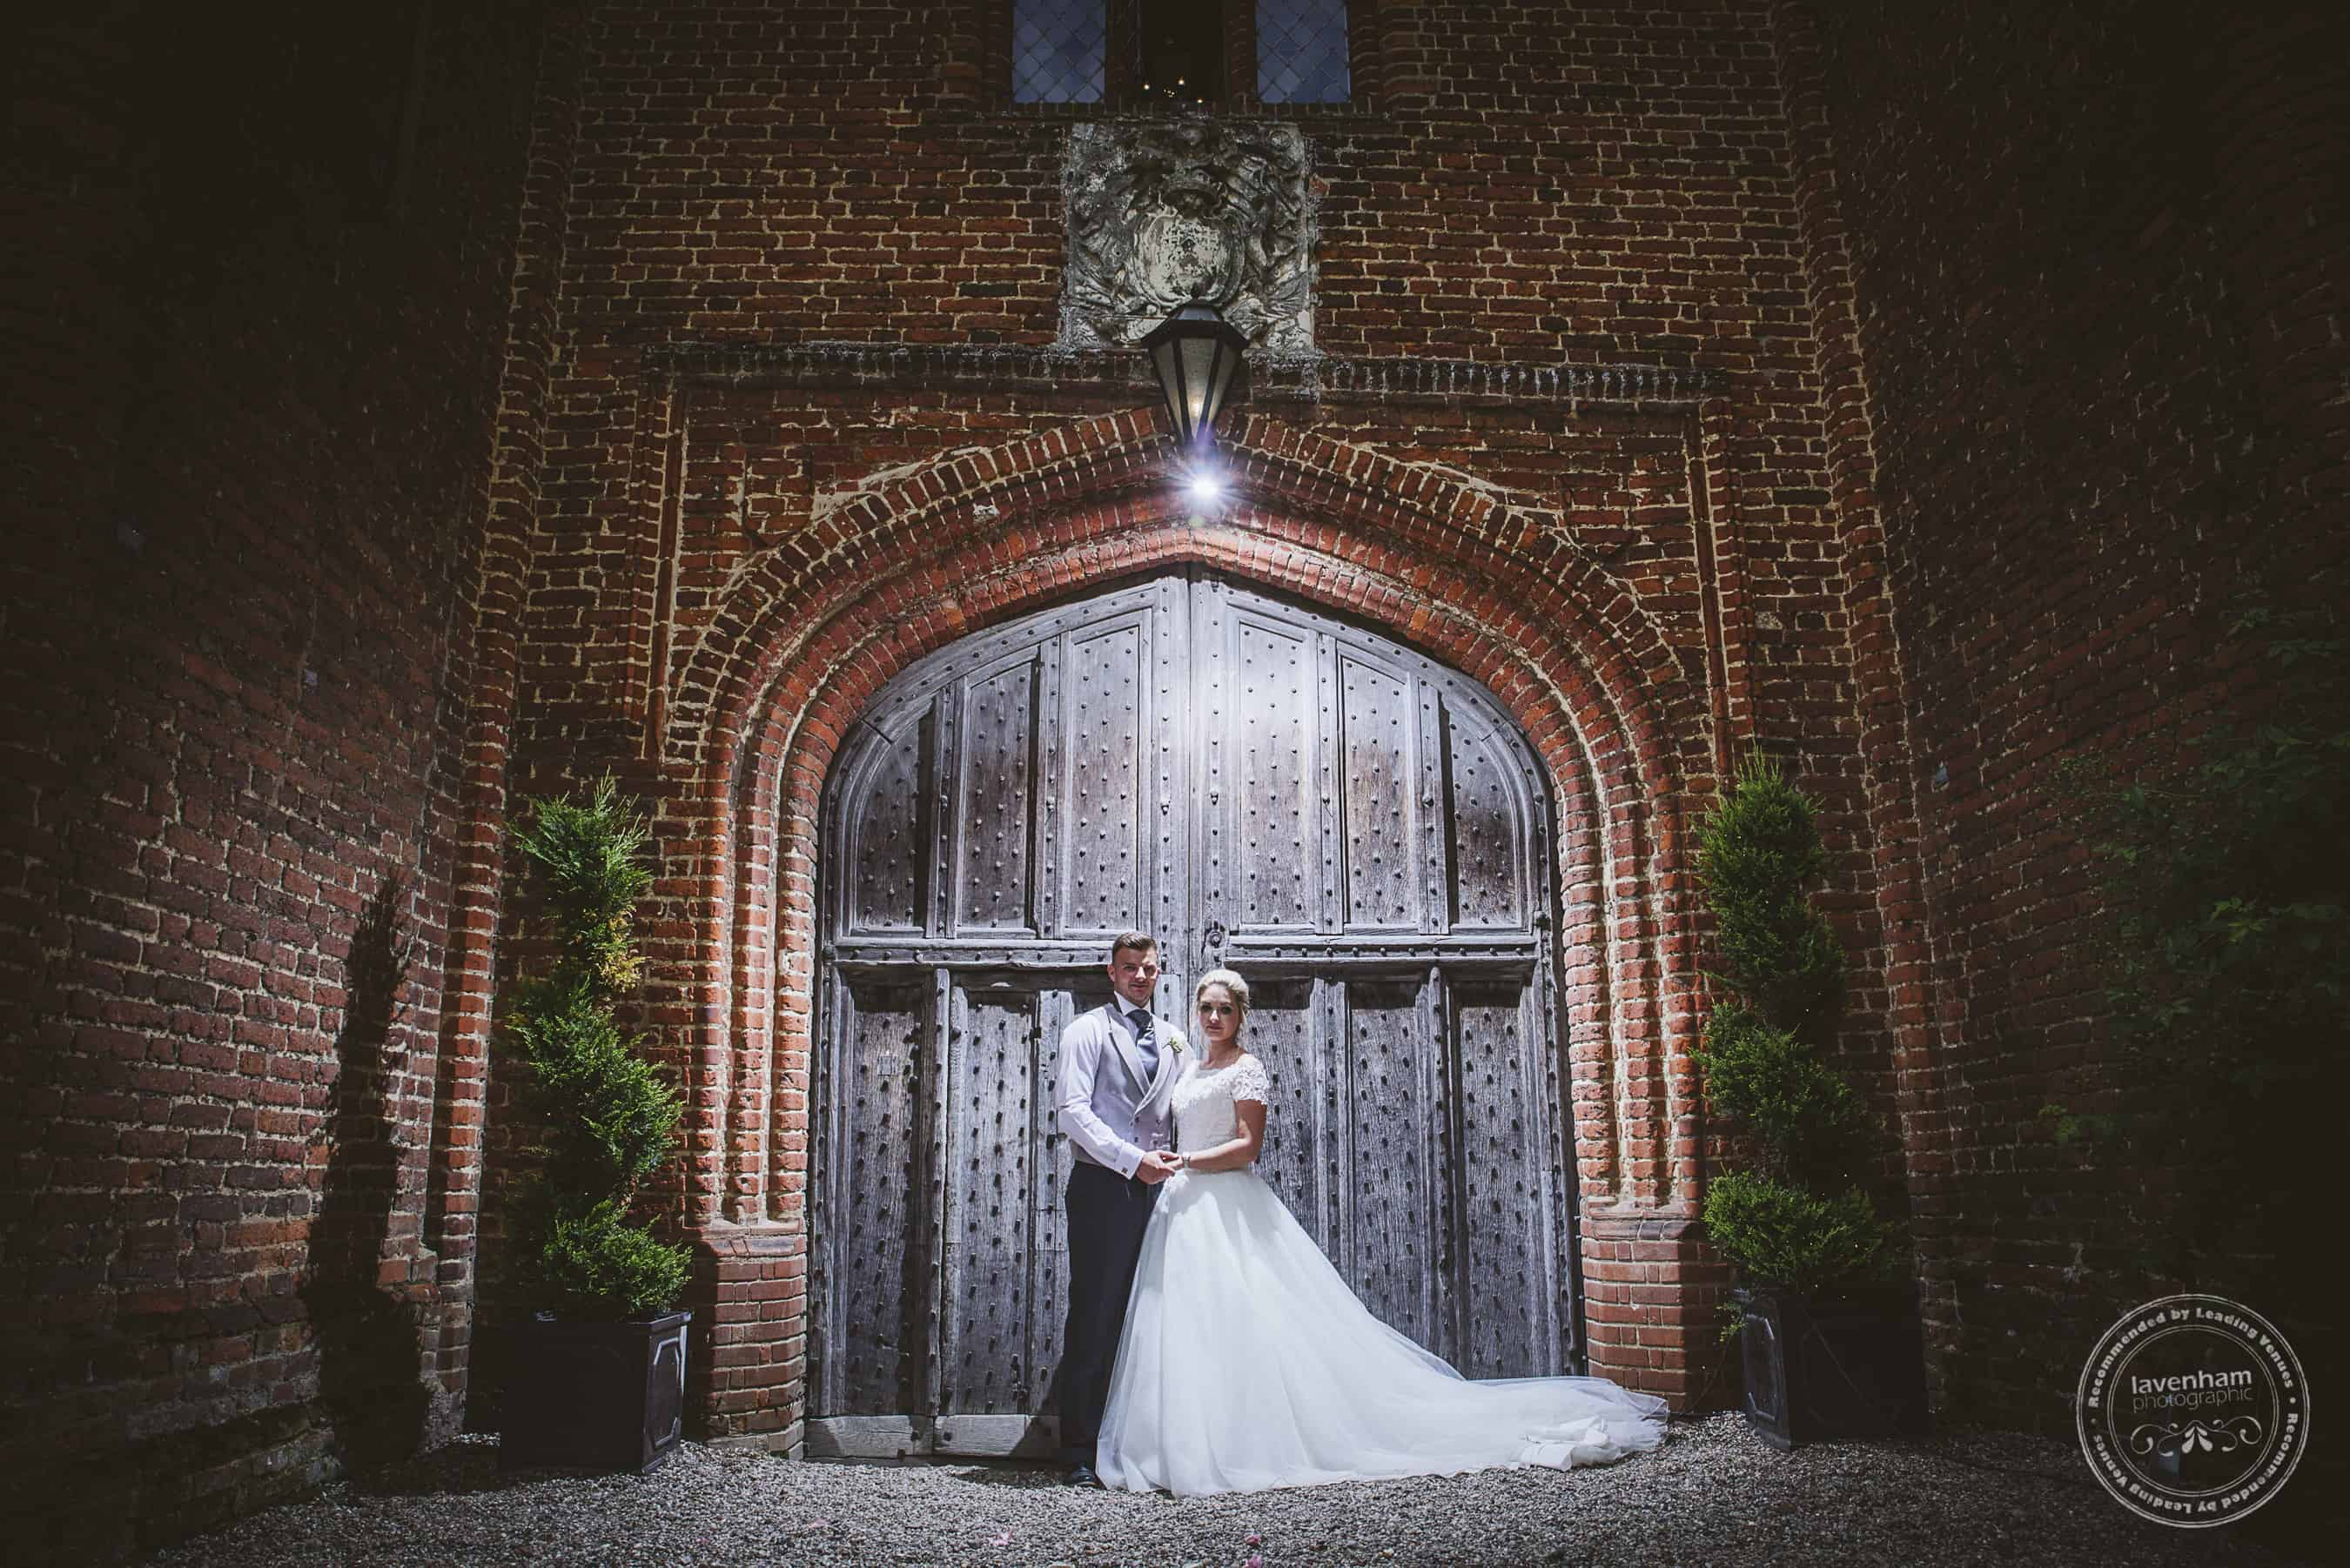 030618 Leez Priory Wedding Photography Lavenham Photographic 095